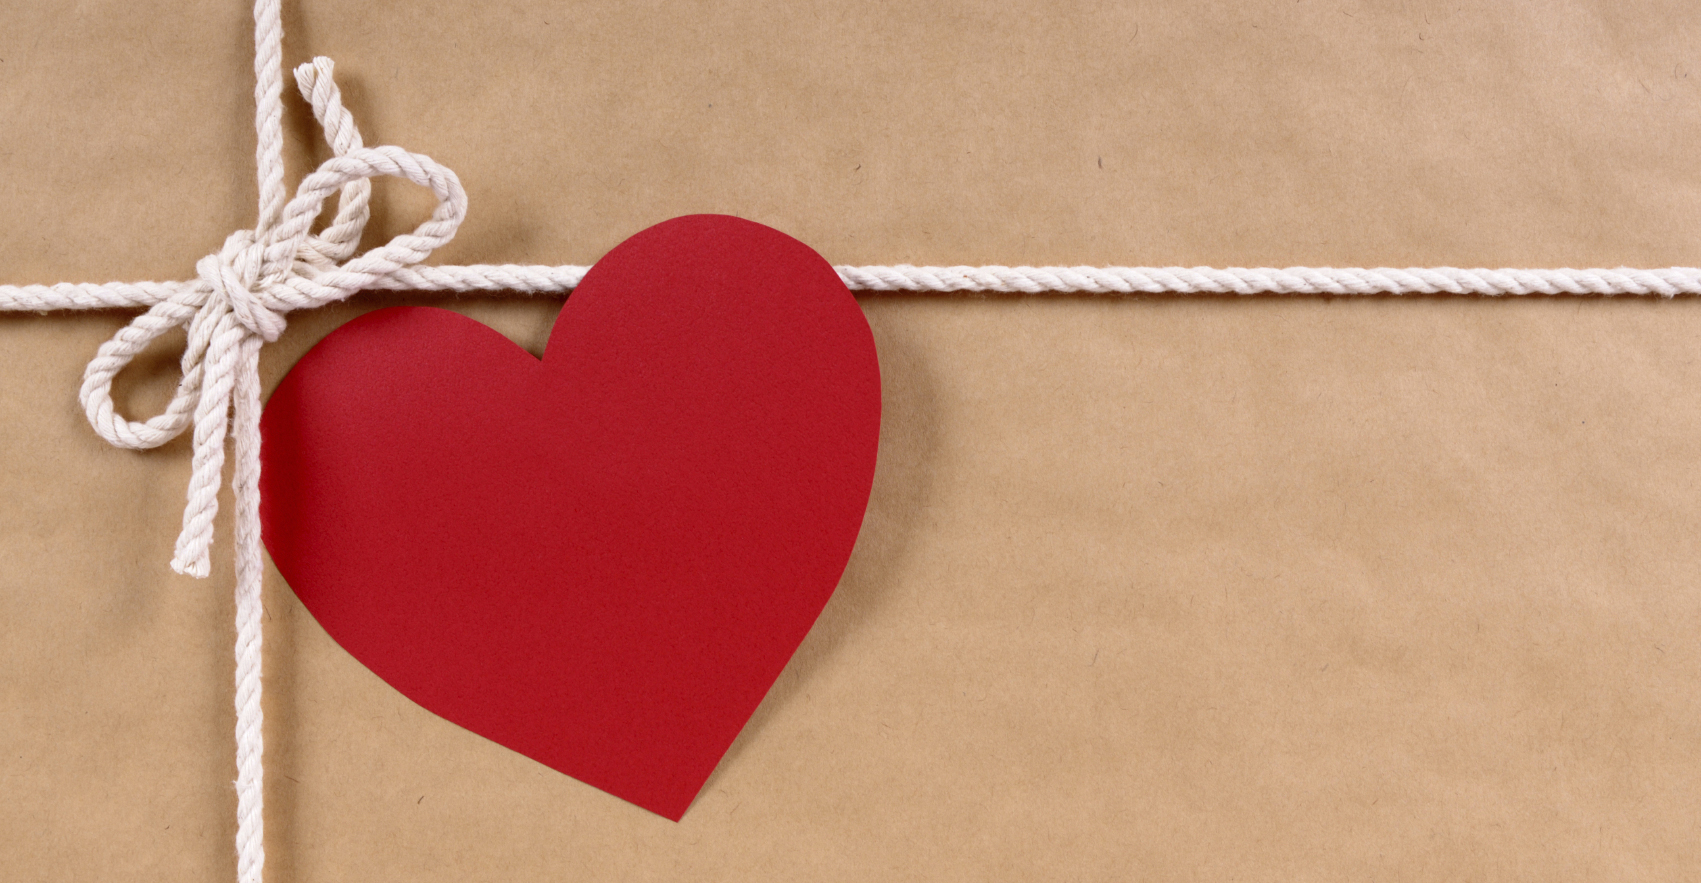 Eco-Friendly Valentine | Going Green and Reducing Carbon Emissions